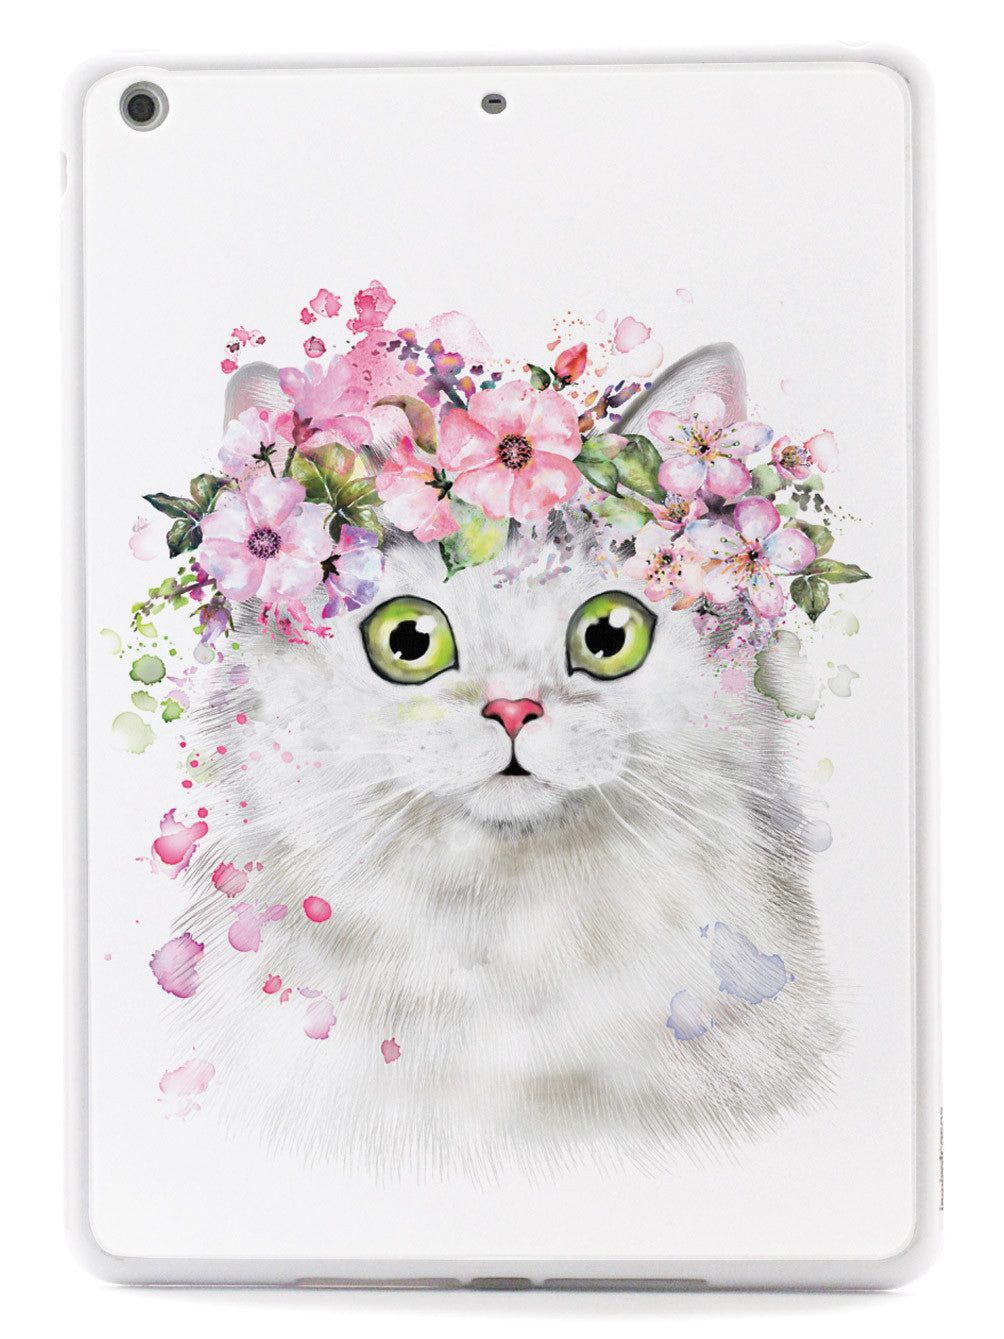 Surprised Flower Kitty - Persian Cat Case